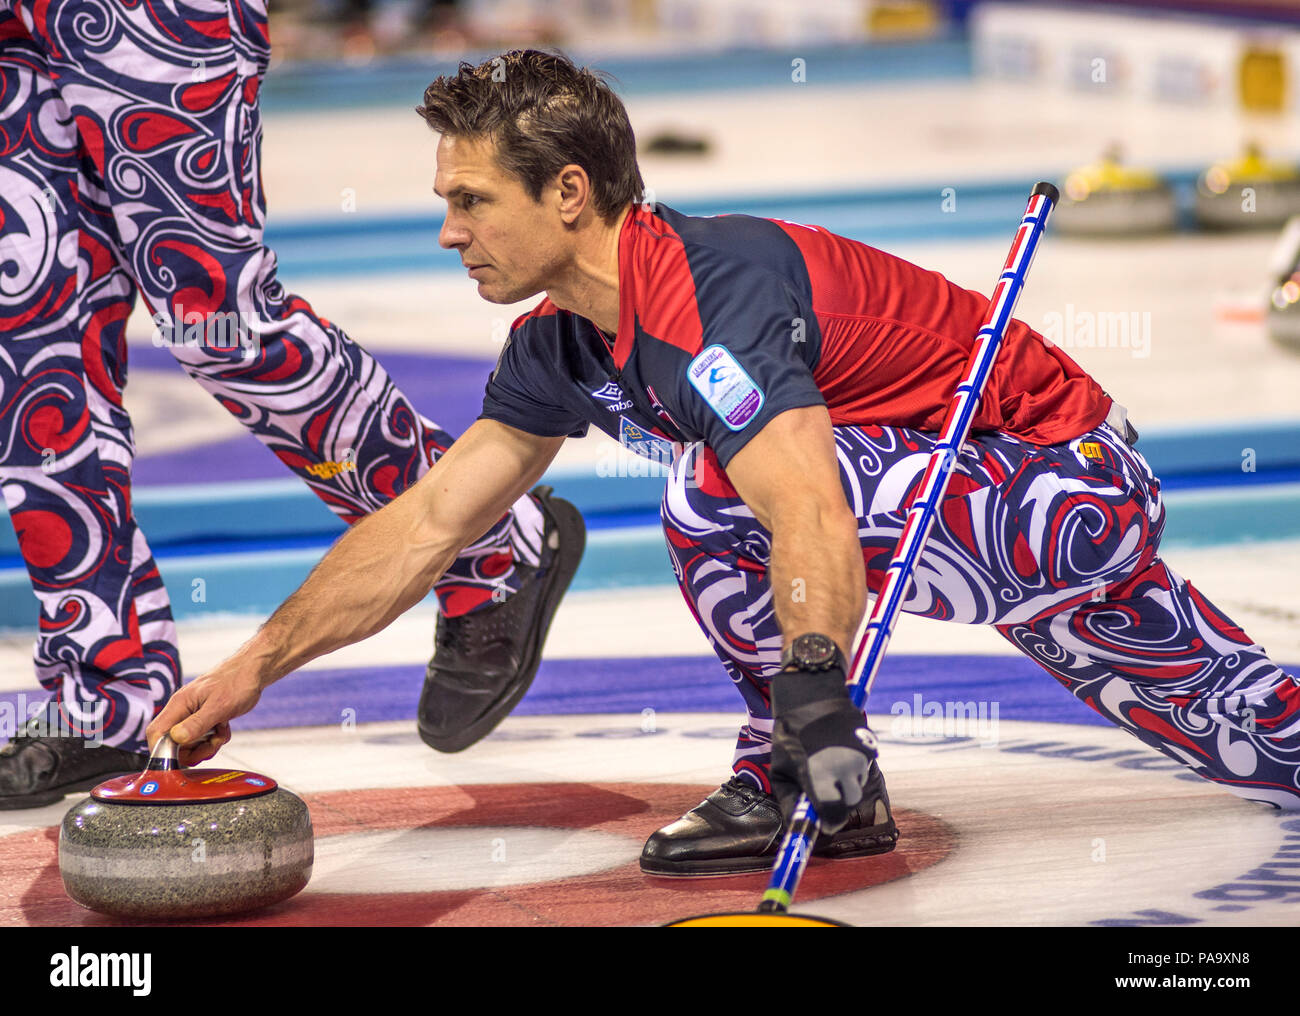 Glasgow, SCOTLAND,  Norway's, Thomas ULSRUD, 'guiding his 'Stone' towards the, 'Hog Line' during his 'Round Robin',' Game, 'Le Gruyère European Curling Championship's', 2016 Venue, Braehead,  Scotland, Tuesday  22/11/2016  © Peter SPURRIER, - Stock Image